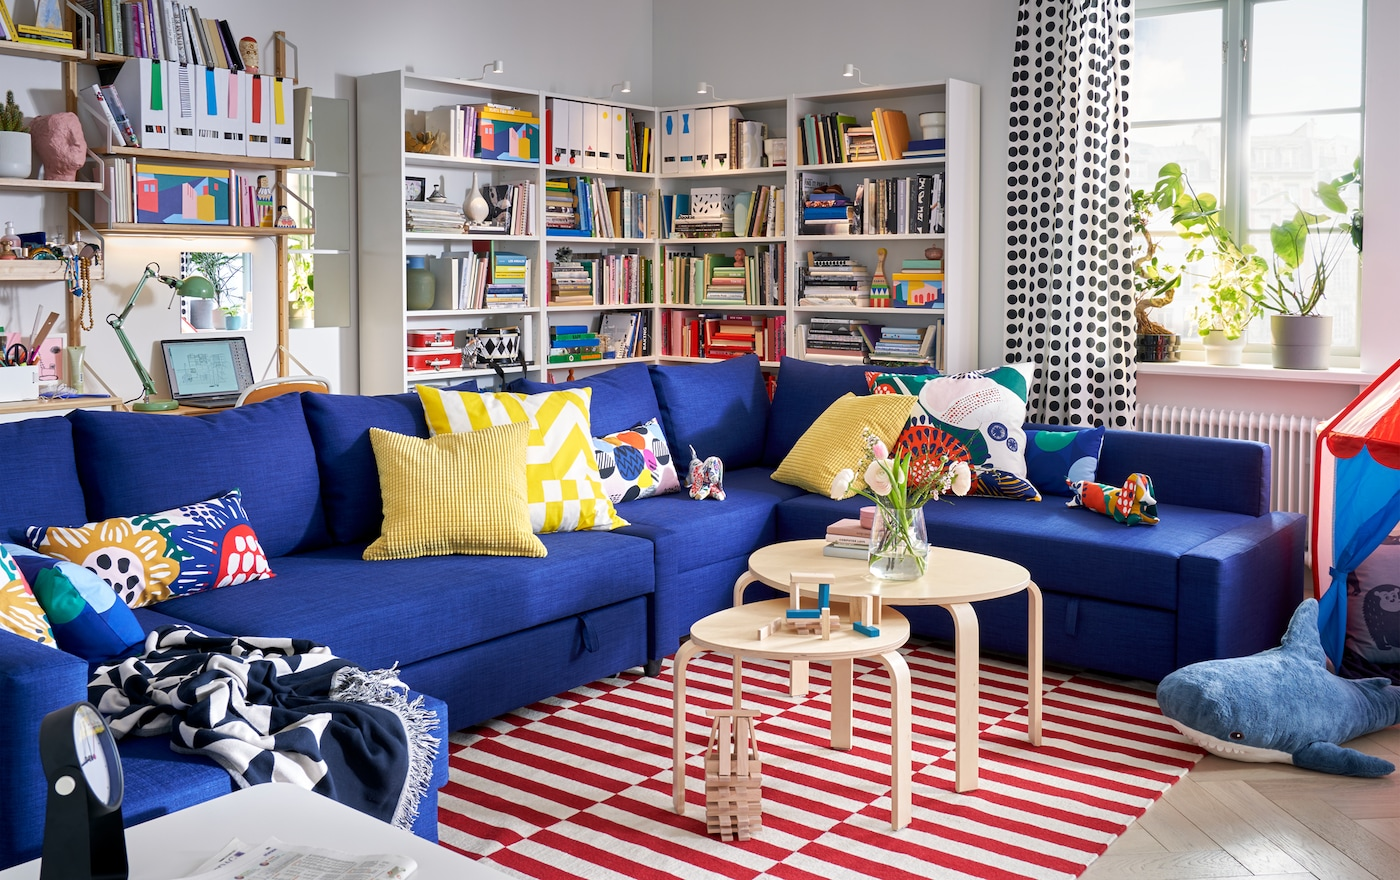 Woonkamer Ideeen Wit.Living Room Ideas Home Furnishing Ikea Ikea